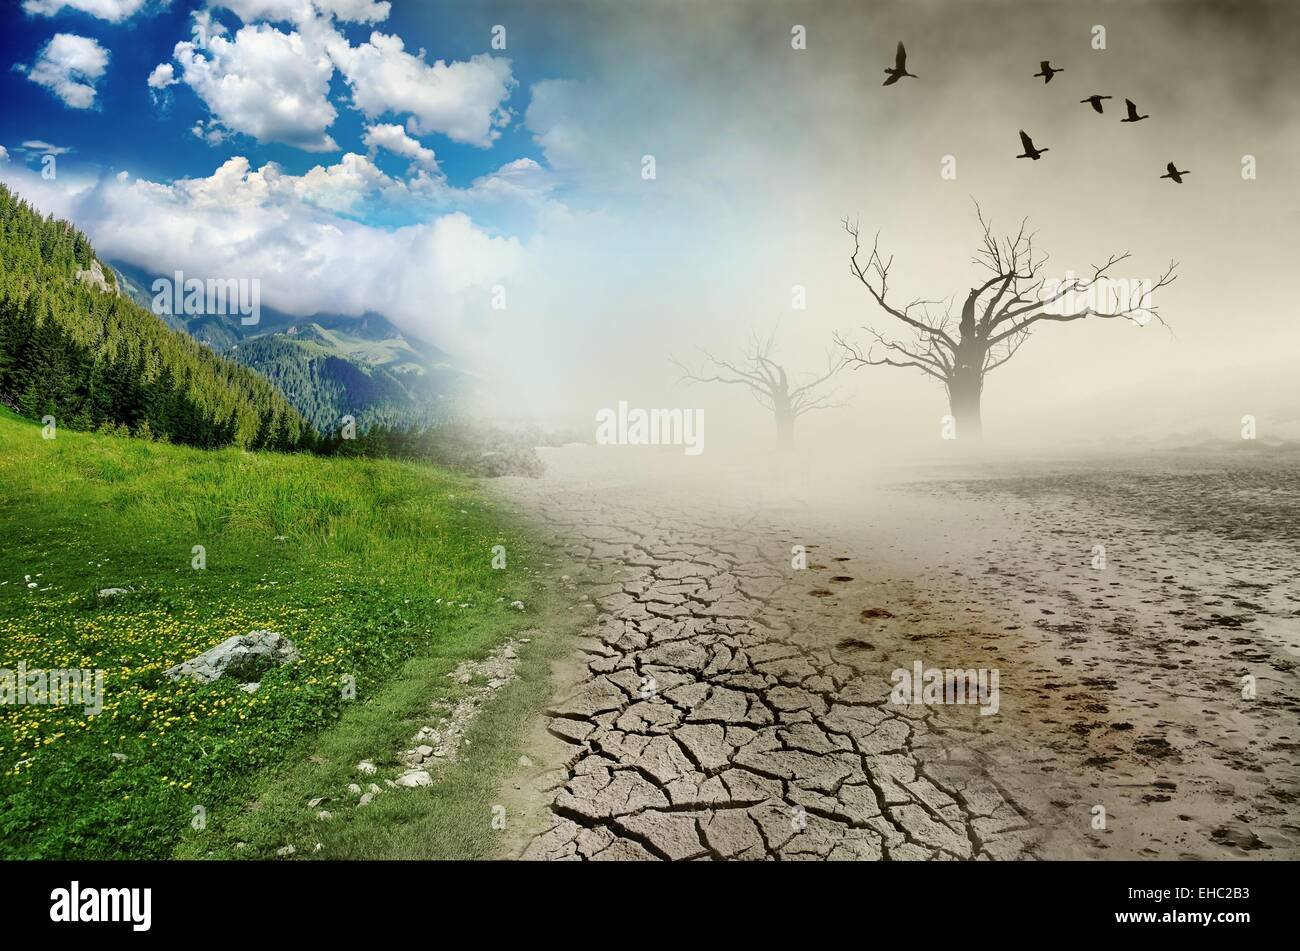 Nature environmental disaster inflicted by human kind - Stock Image